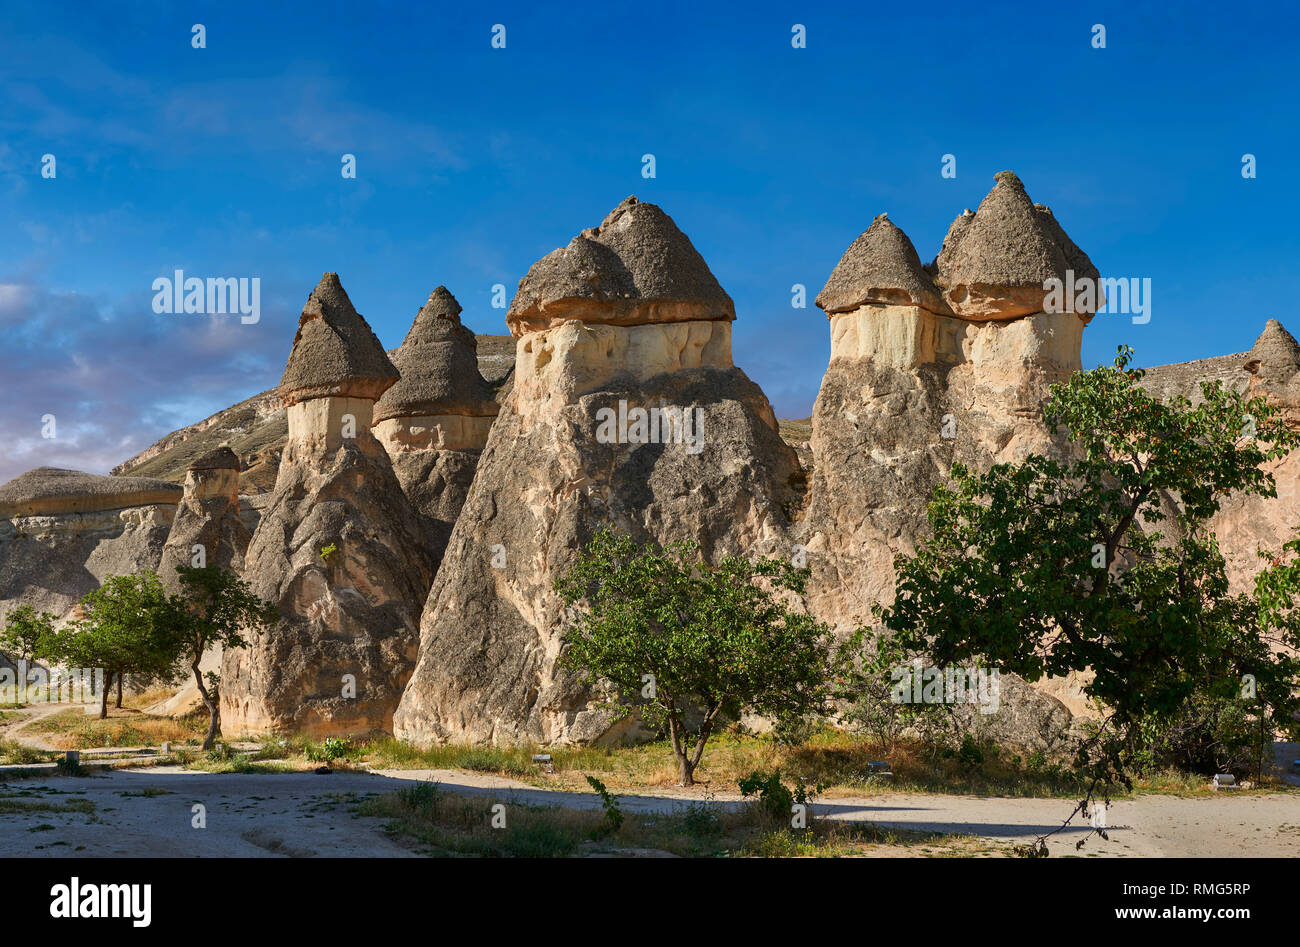 """Pictures & images of the fairy chimney rock formations and rock pillars of """"Pasaba Valley"""" near Goreme, Cappadocia, Nevsehir, Turkey - Stock Image"""